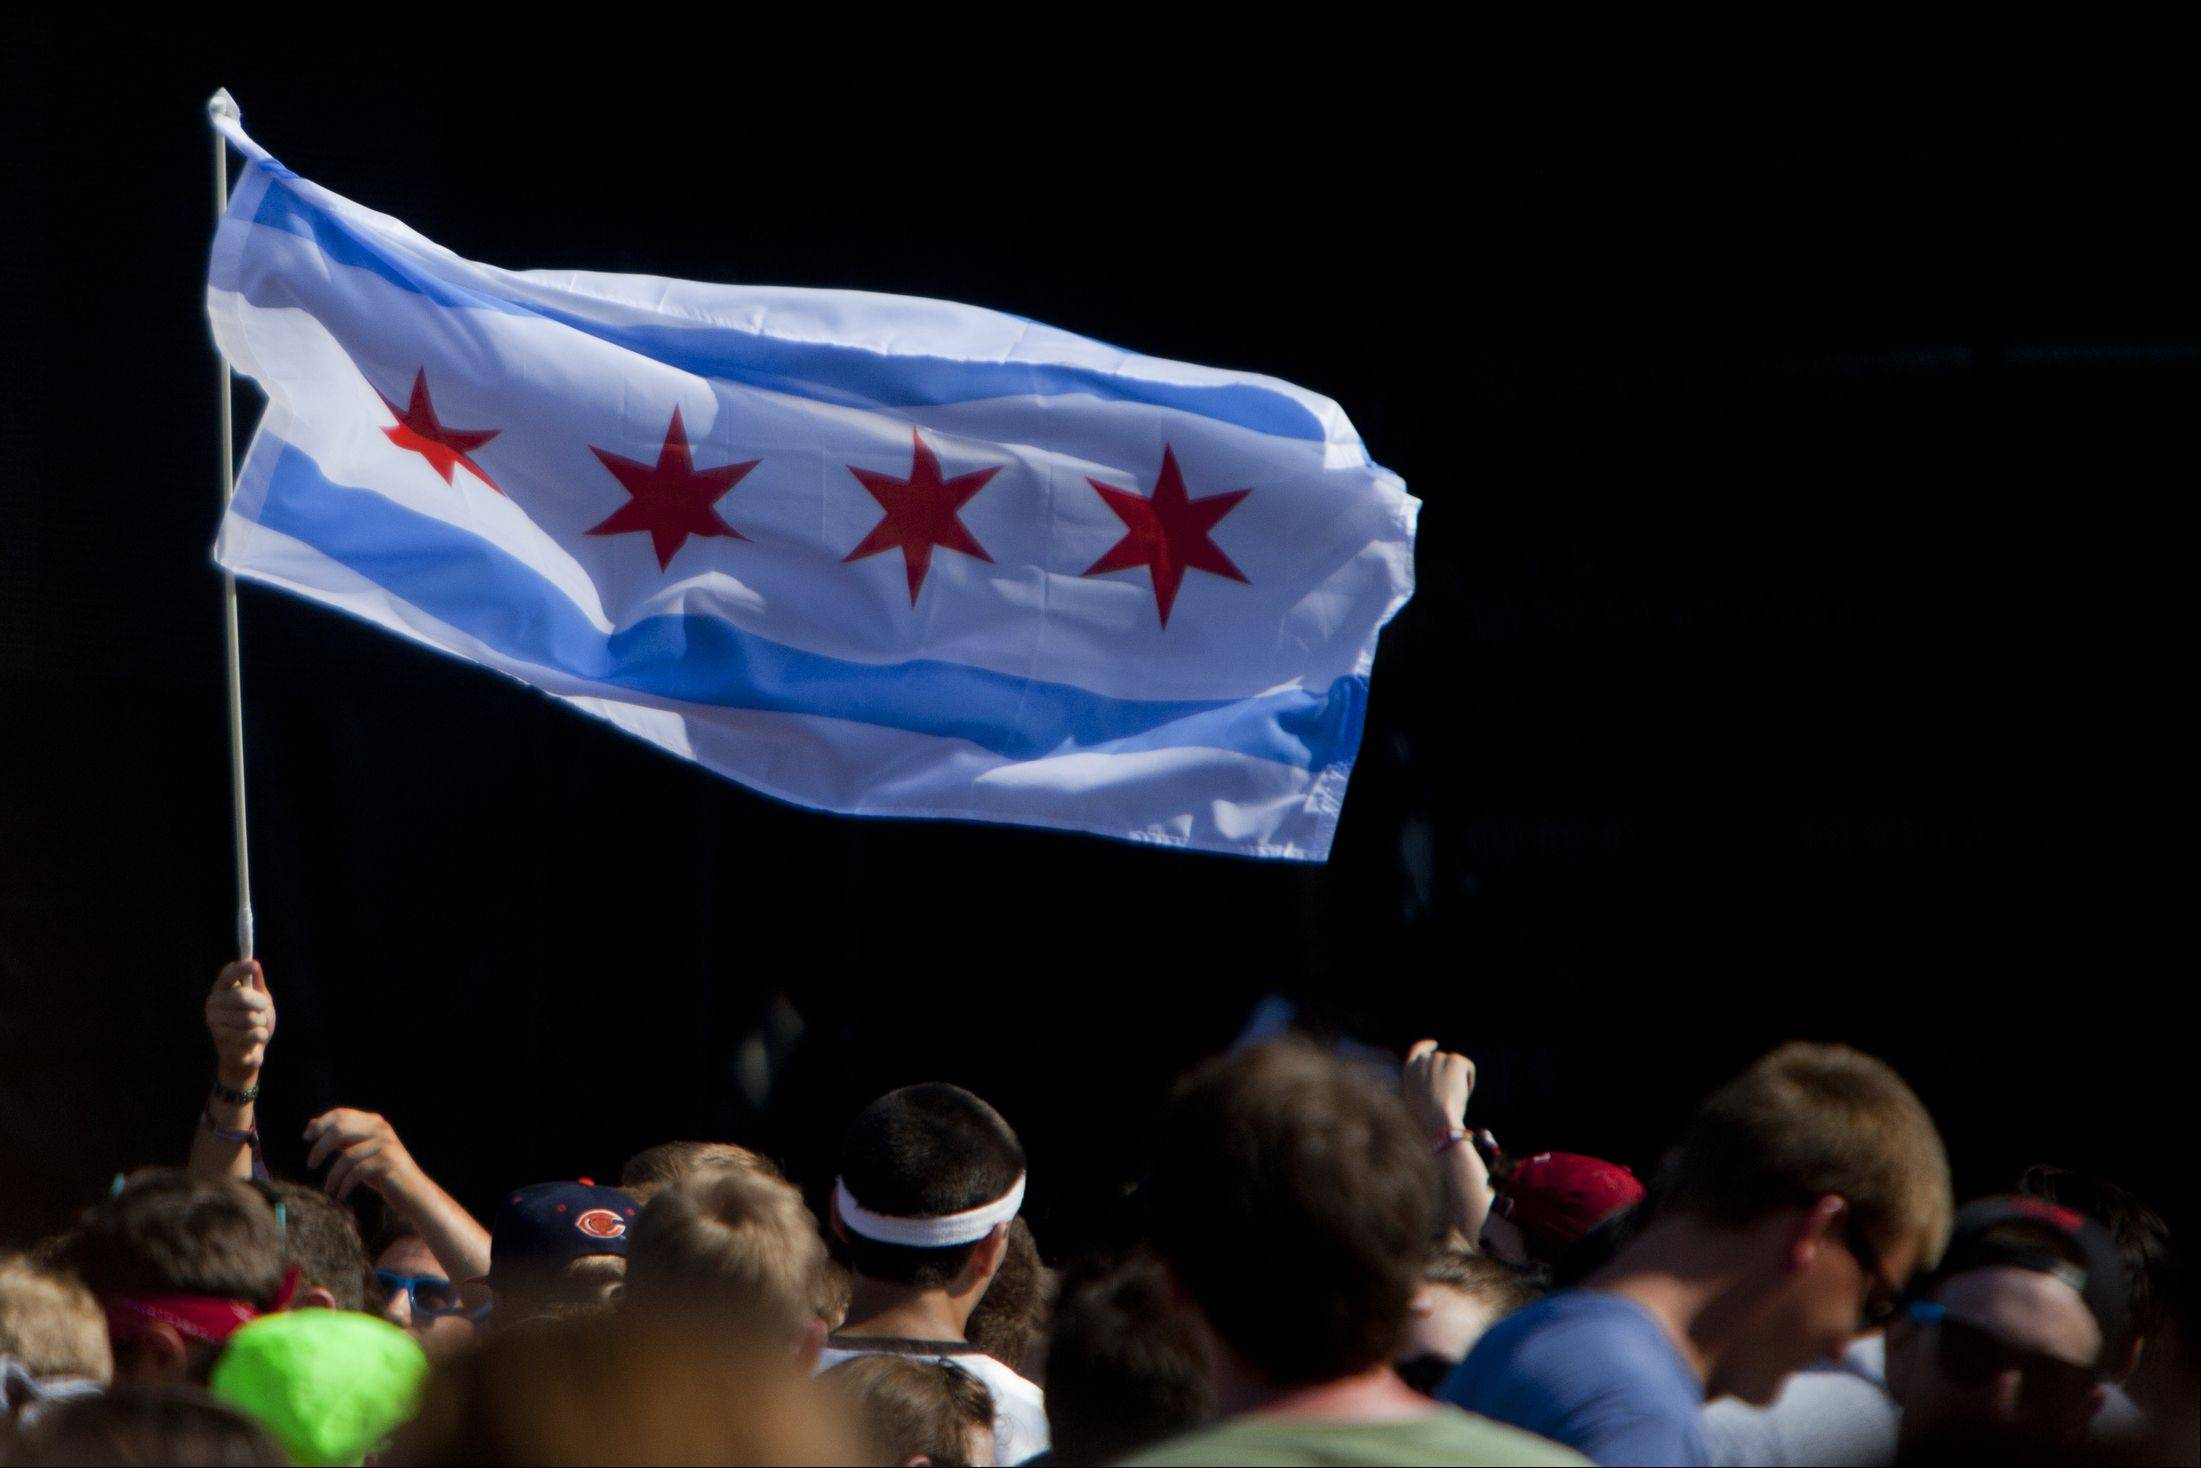 A fan waves a City of Chicago flag.